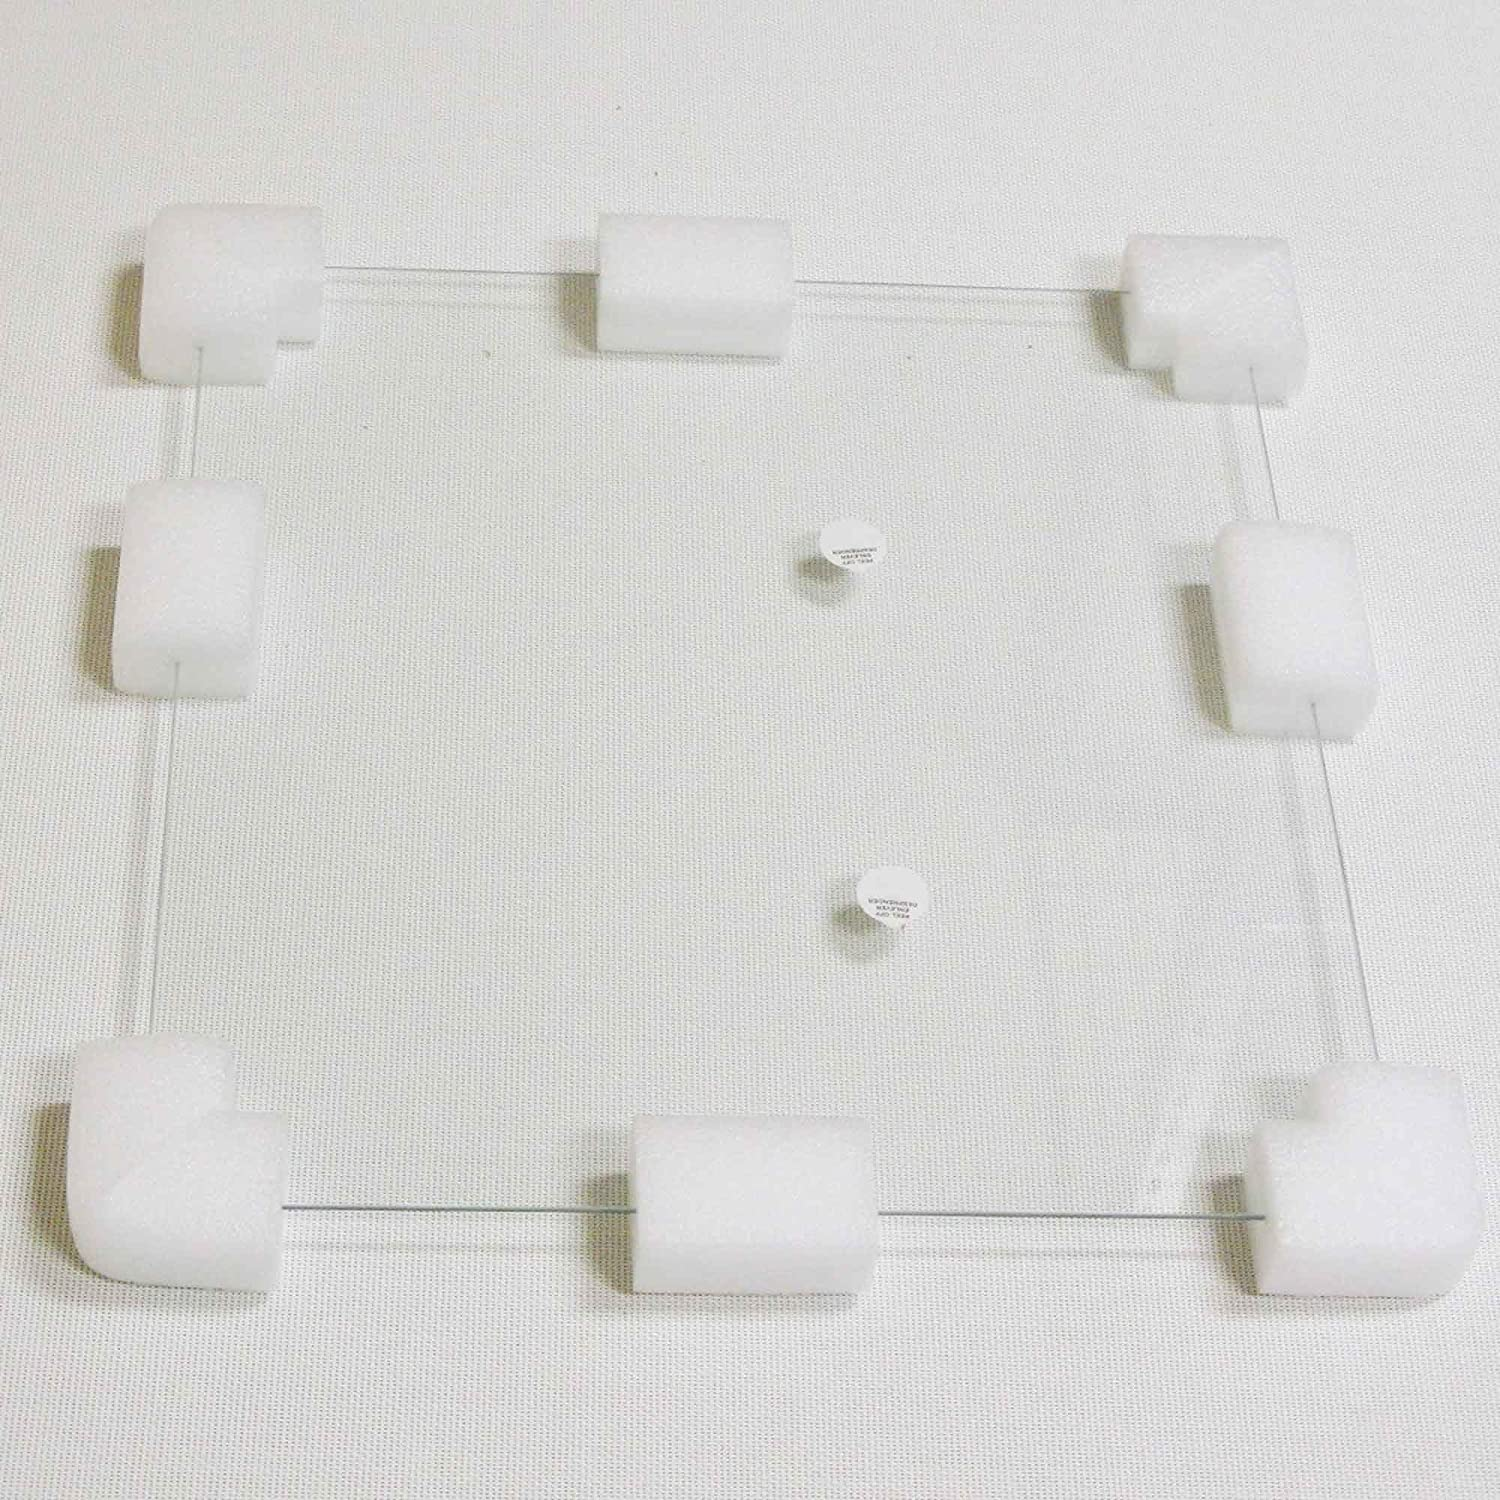 Frigidaire 215723552 FRIGIDAIRE REFRIGERATOR DRAWER COVER GLASS